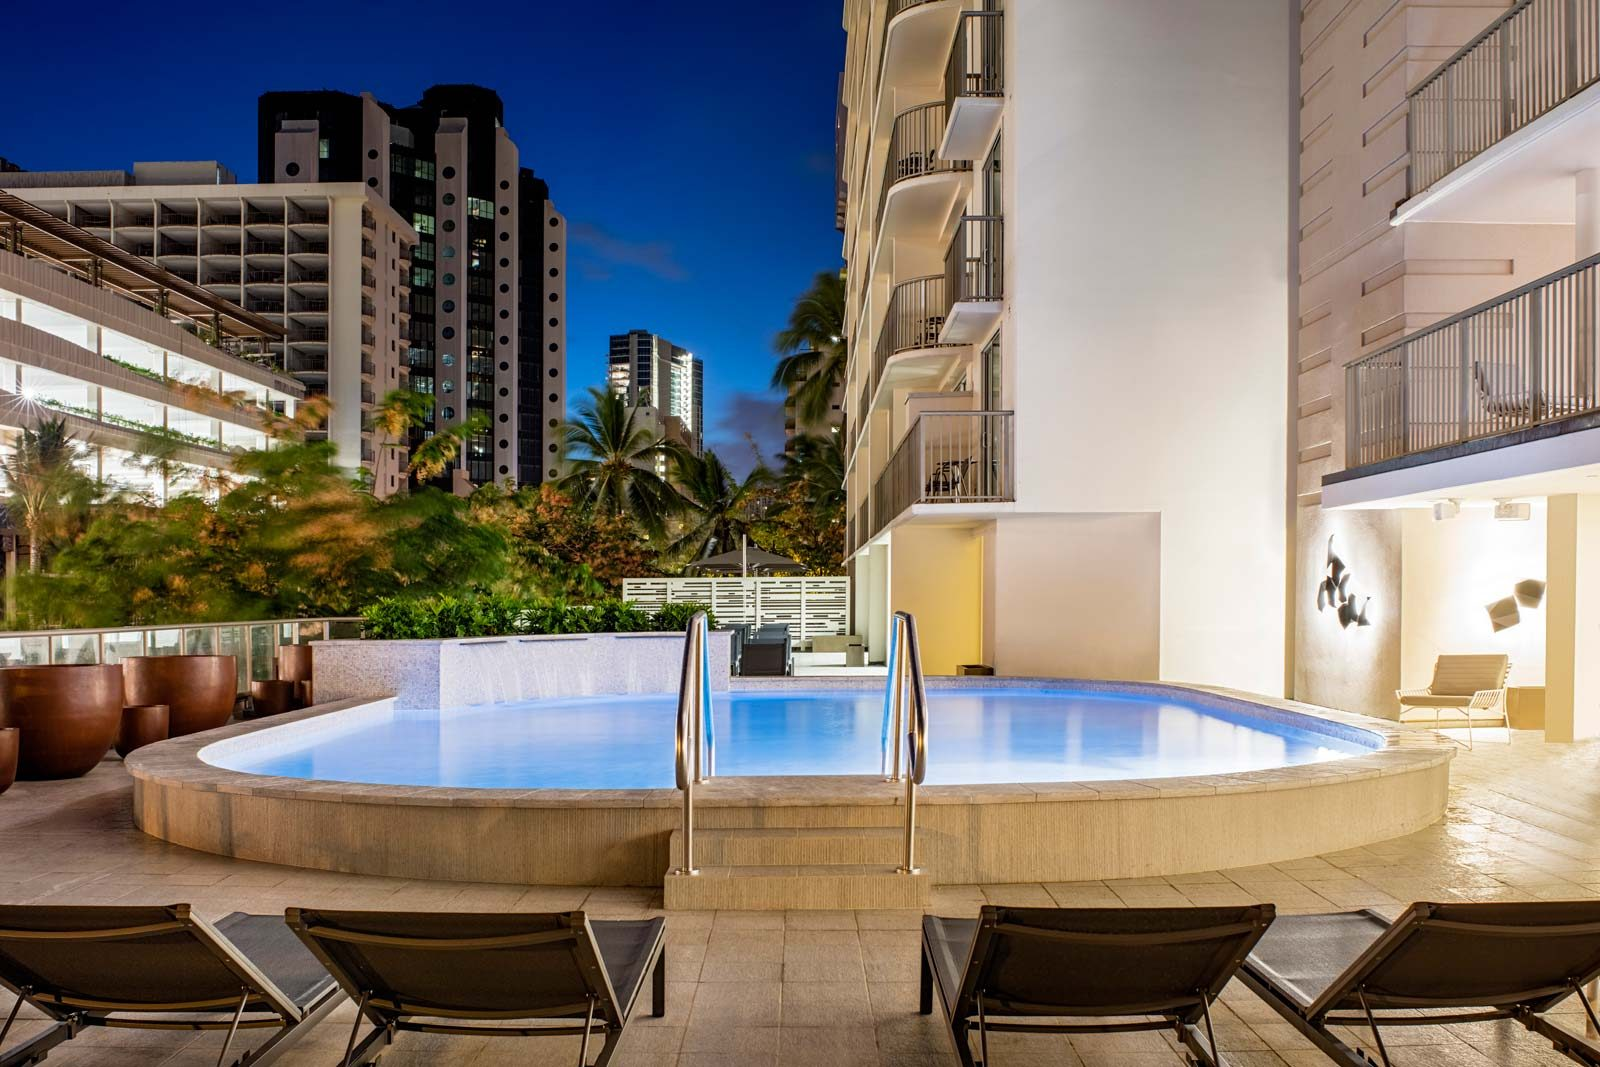 per diem lodging inc hilton garden inn waikiki beach. Black Bedroom Furniture Sets. Home Design Ideas